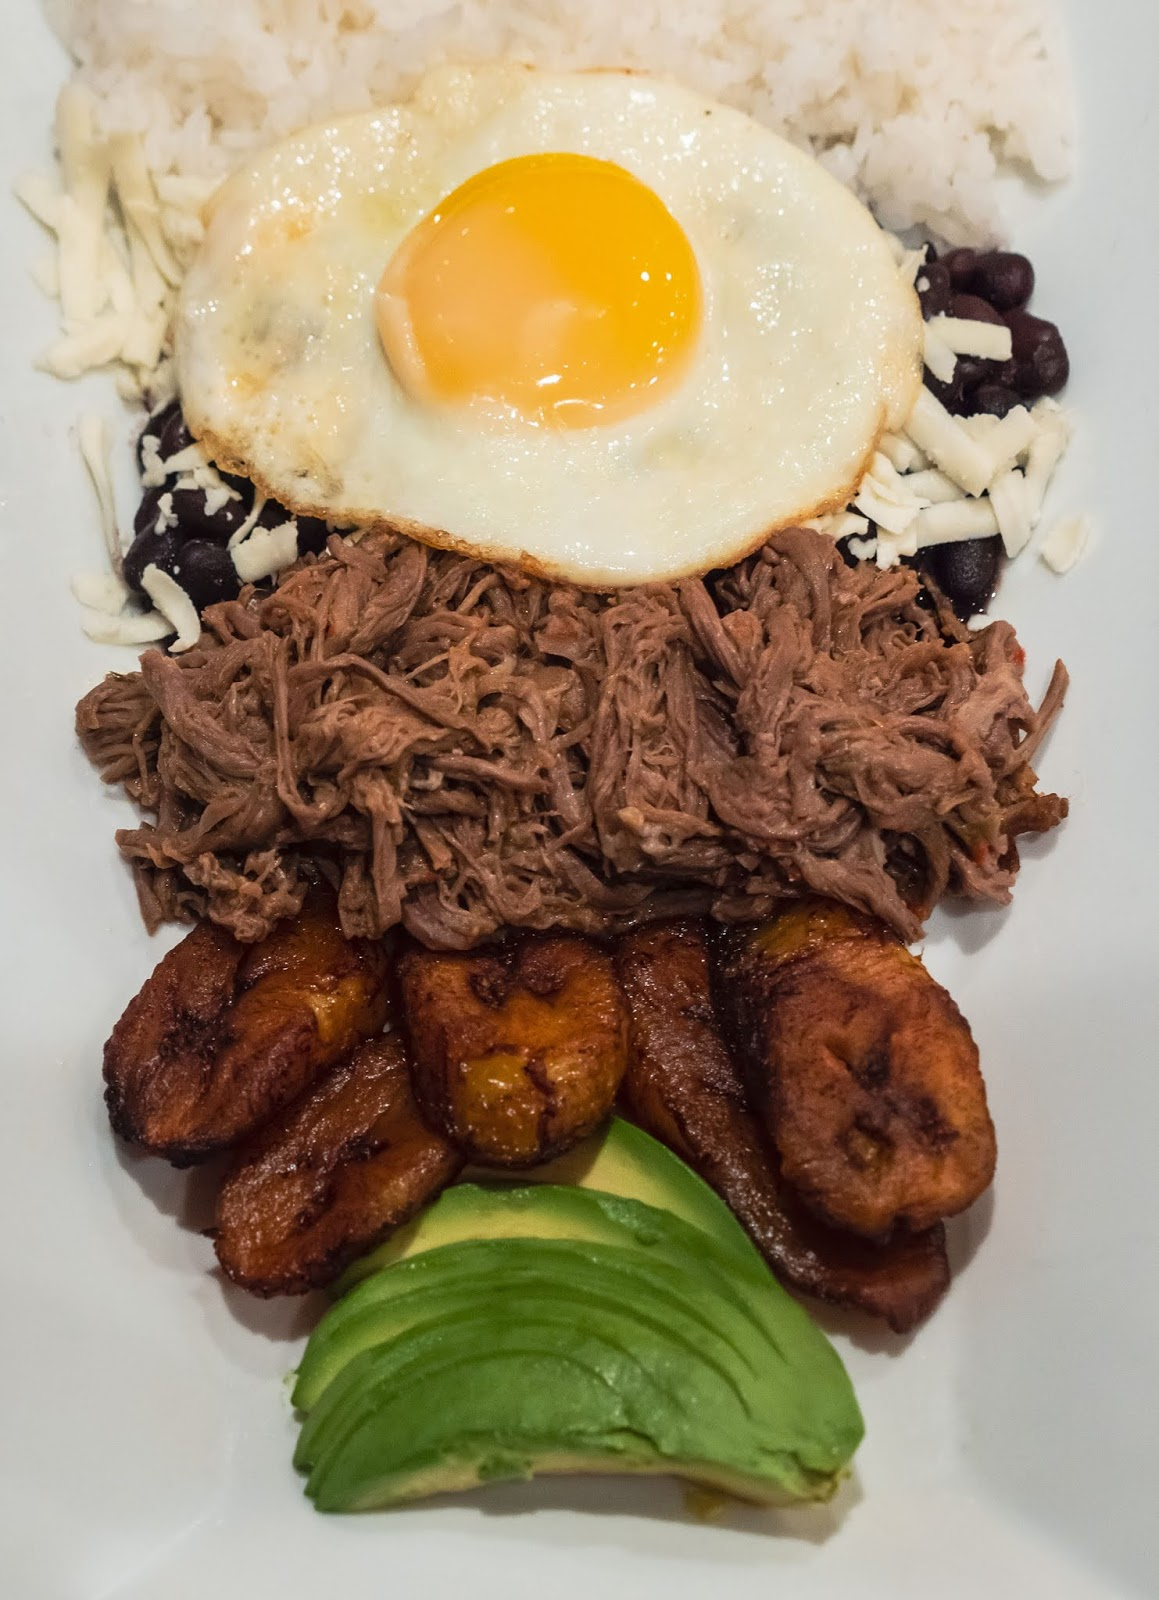 Local Food Rocks: La Calle Pabellion, the National Dish of Venezuela